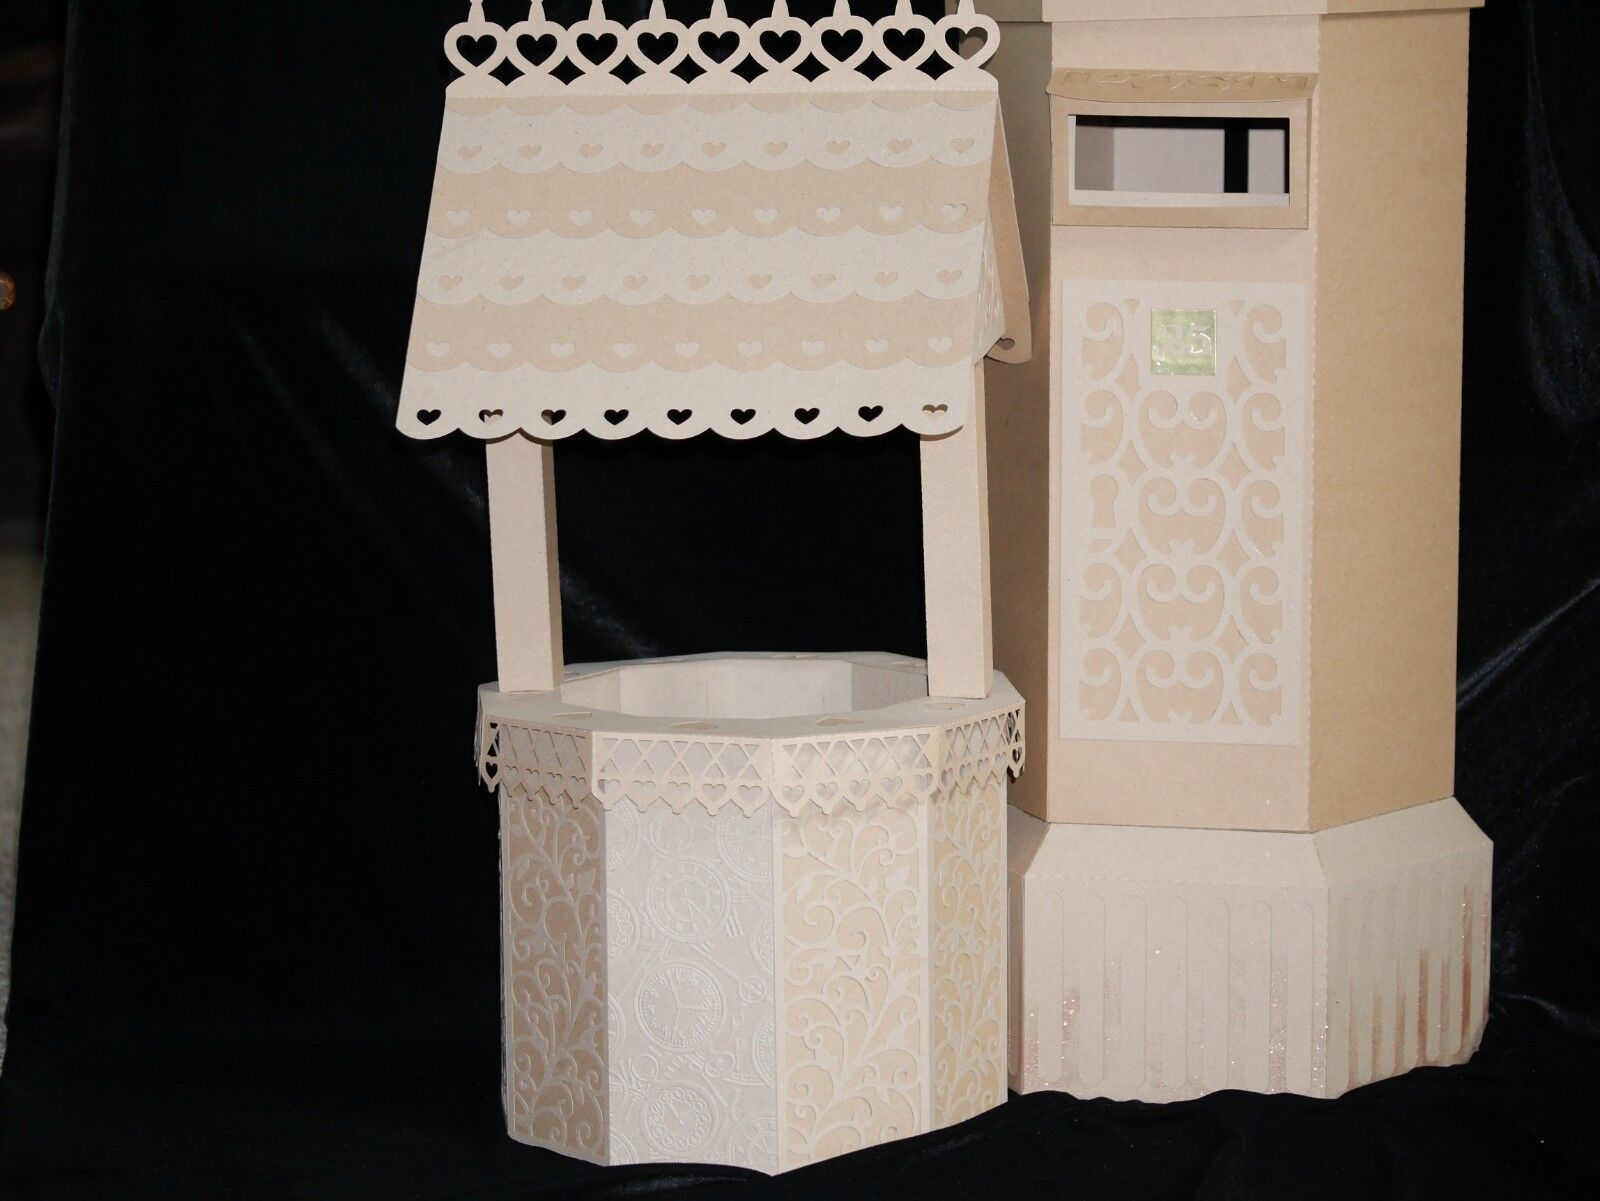 Special Occasion Handmade Well Wishes Pillar Post Box or Wishing Well